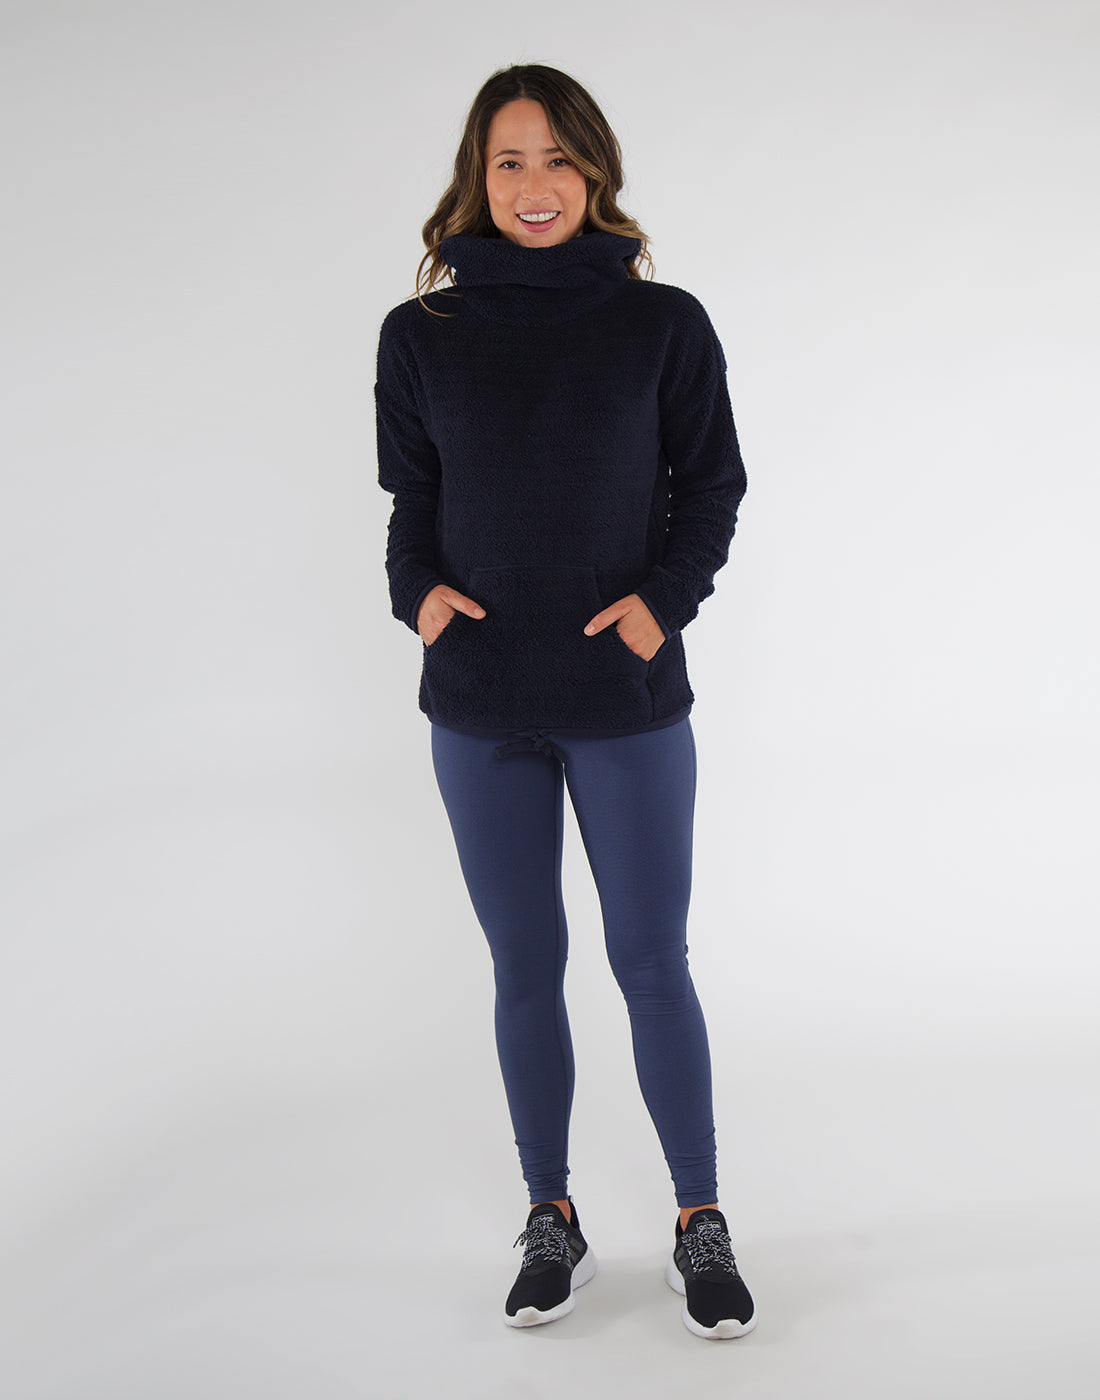 Roley Cowl : Navy